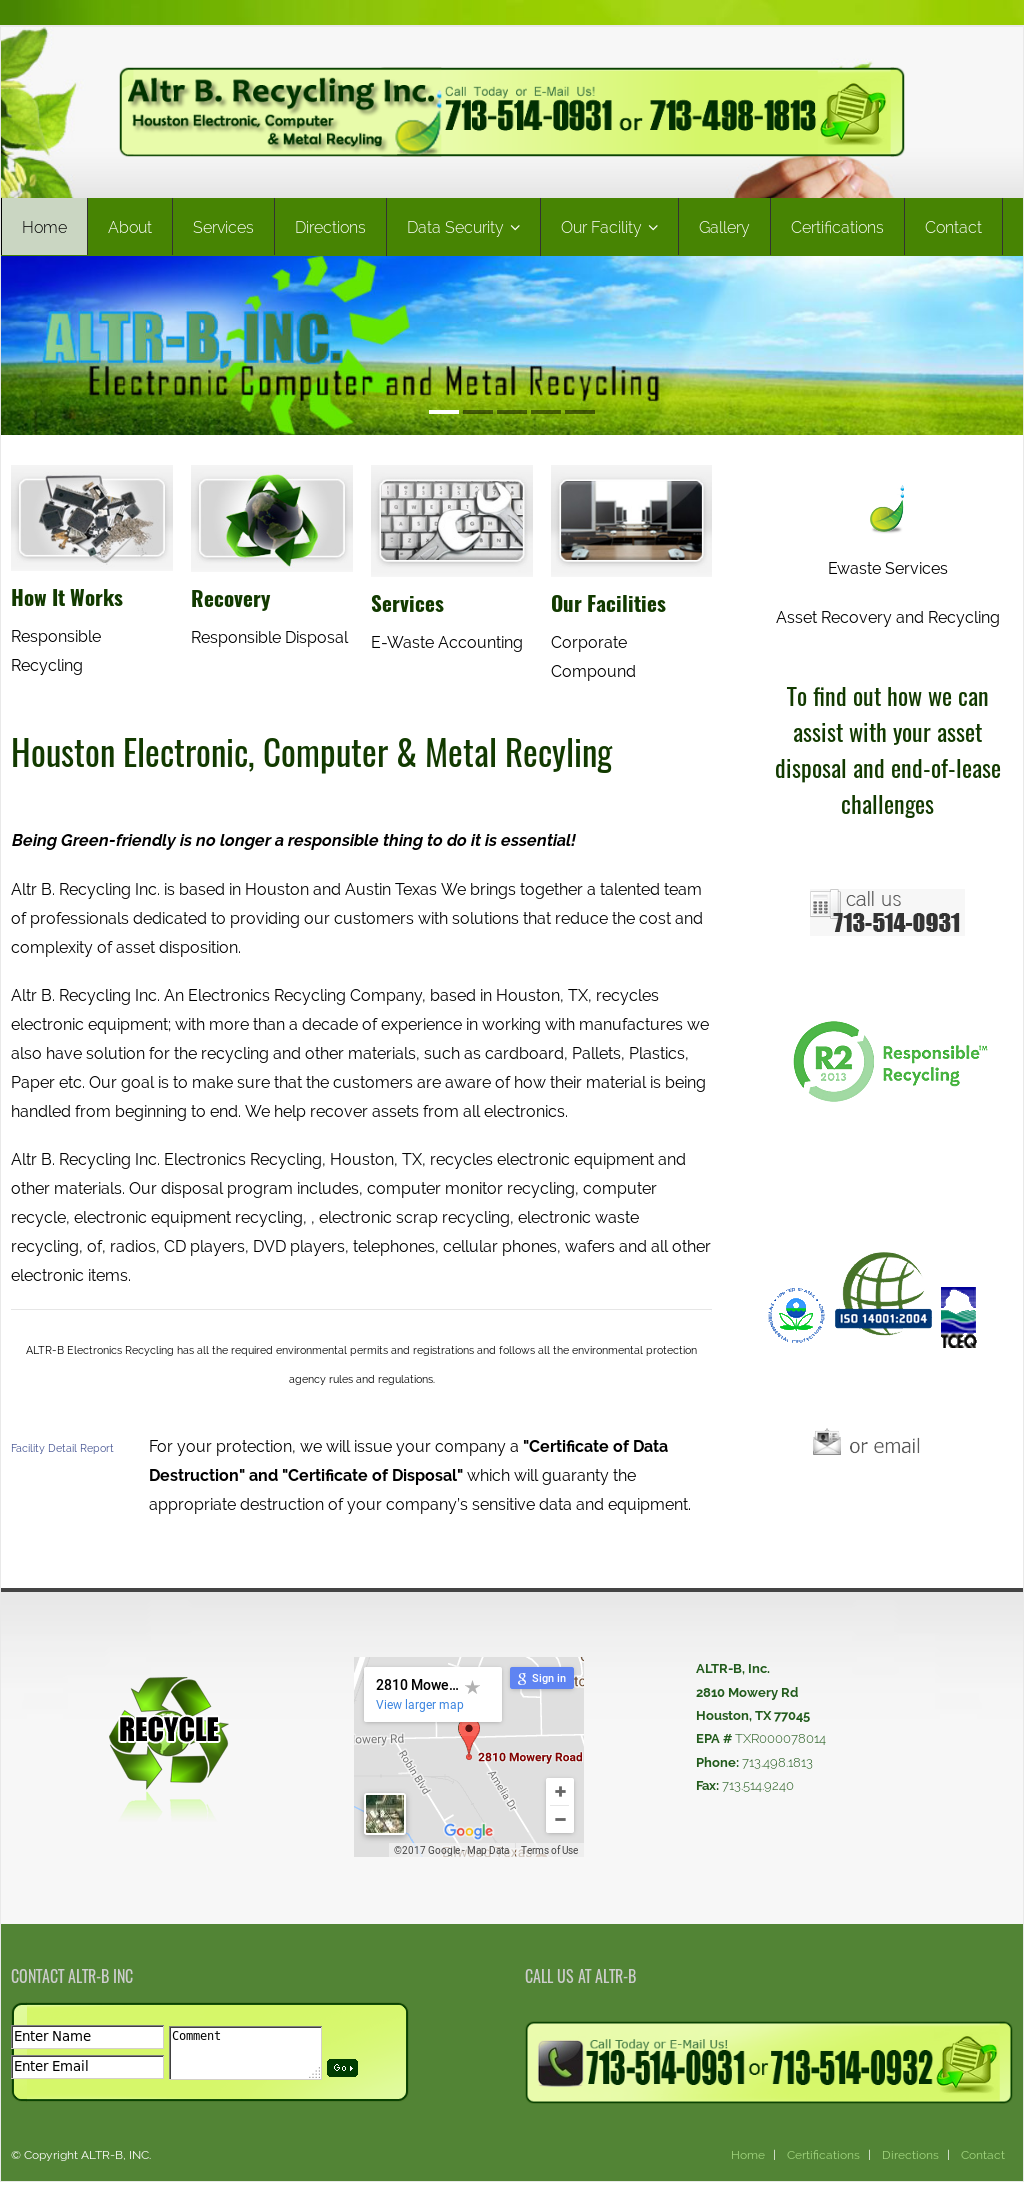 Altr B  Recycling Competitors, Revenue and Employees - Owler Company